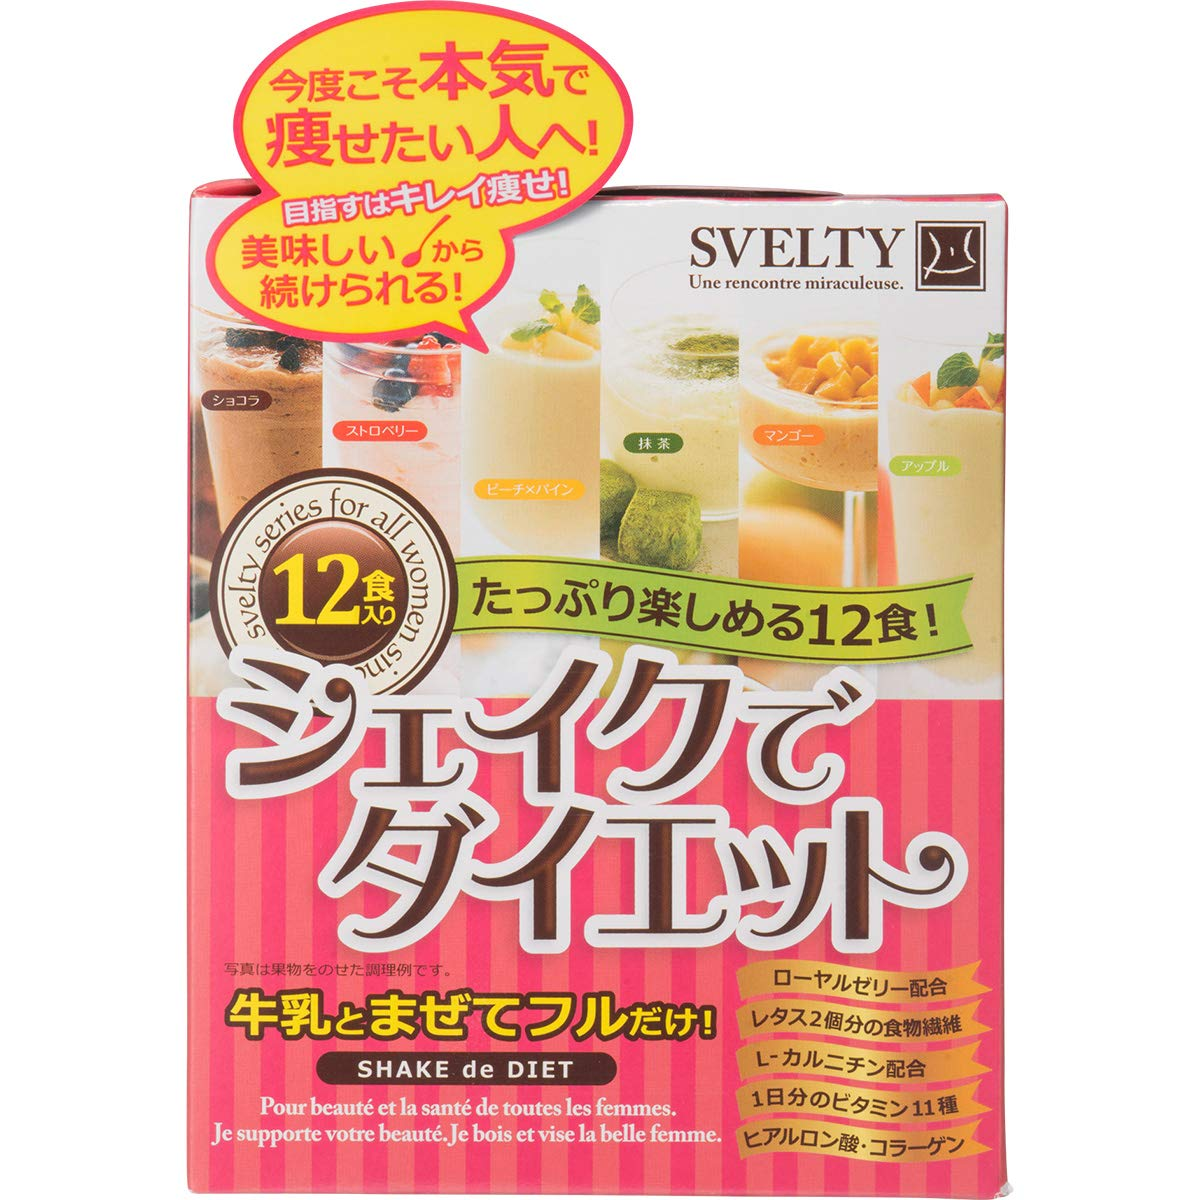 Diet Meals 12 + Shaker Shake Svelty by Nature Land Candles